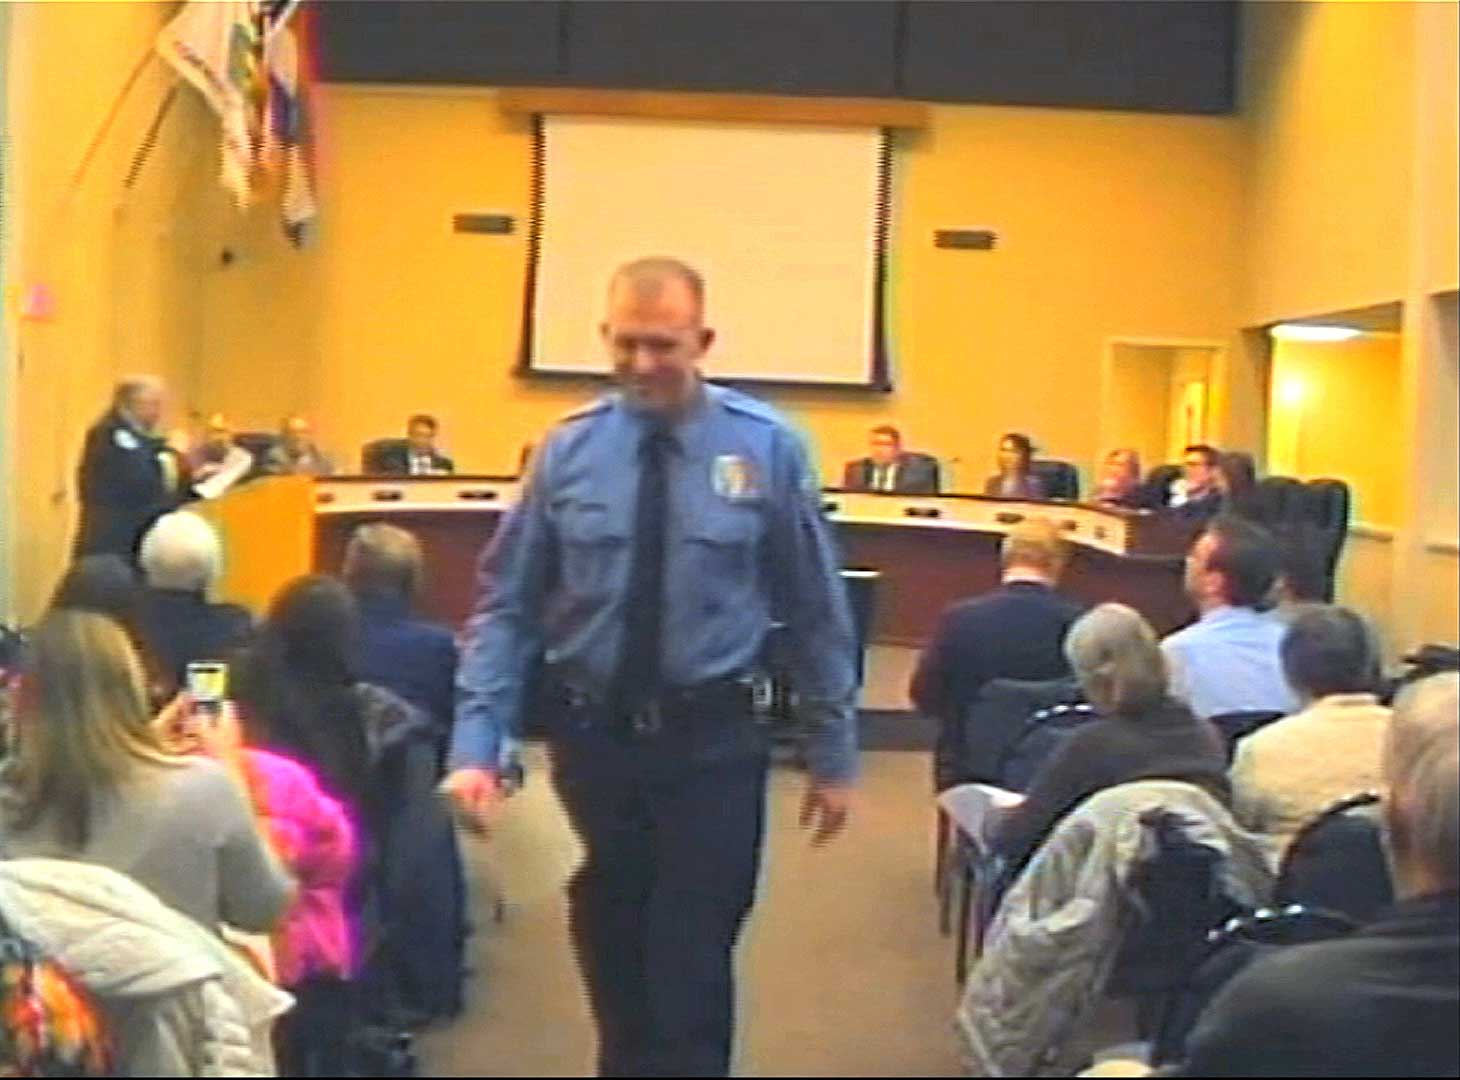 Darren Wilson at a Ferguson city council meeting on Feb. 11, 2014. The image was the first widely-circulated photo of Wilson after the shooting.